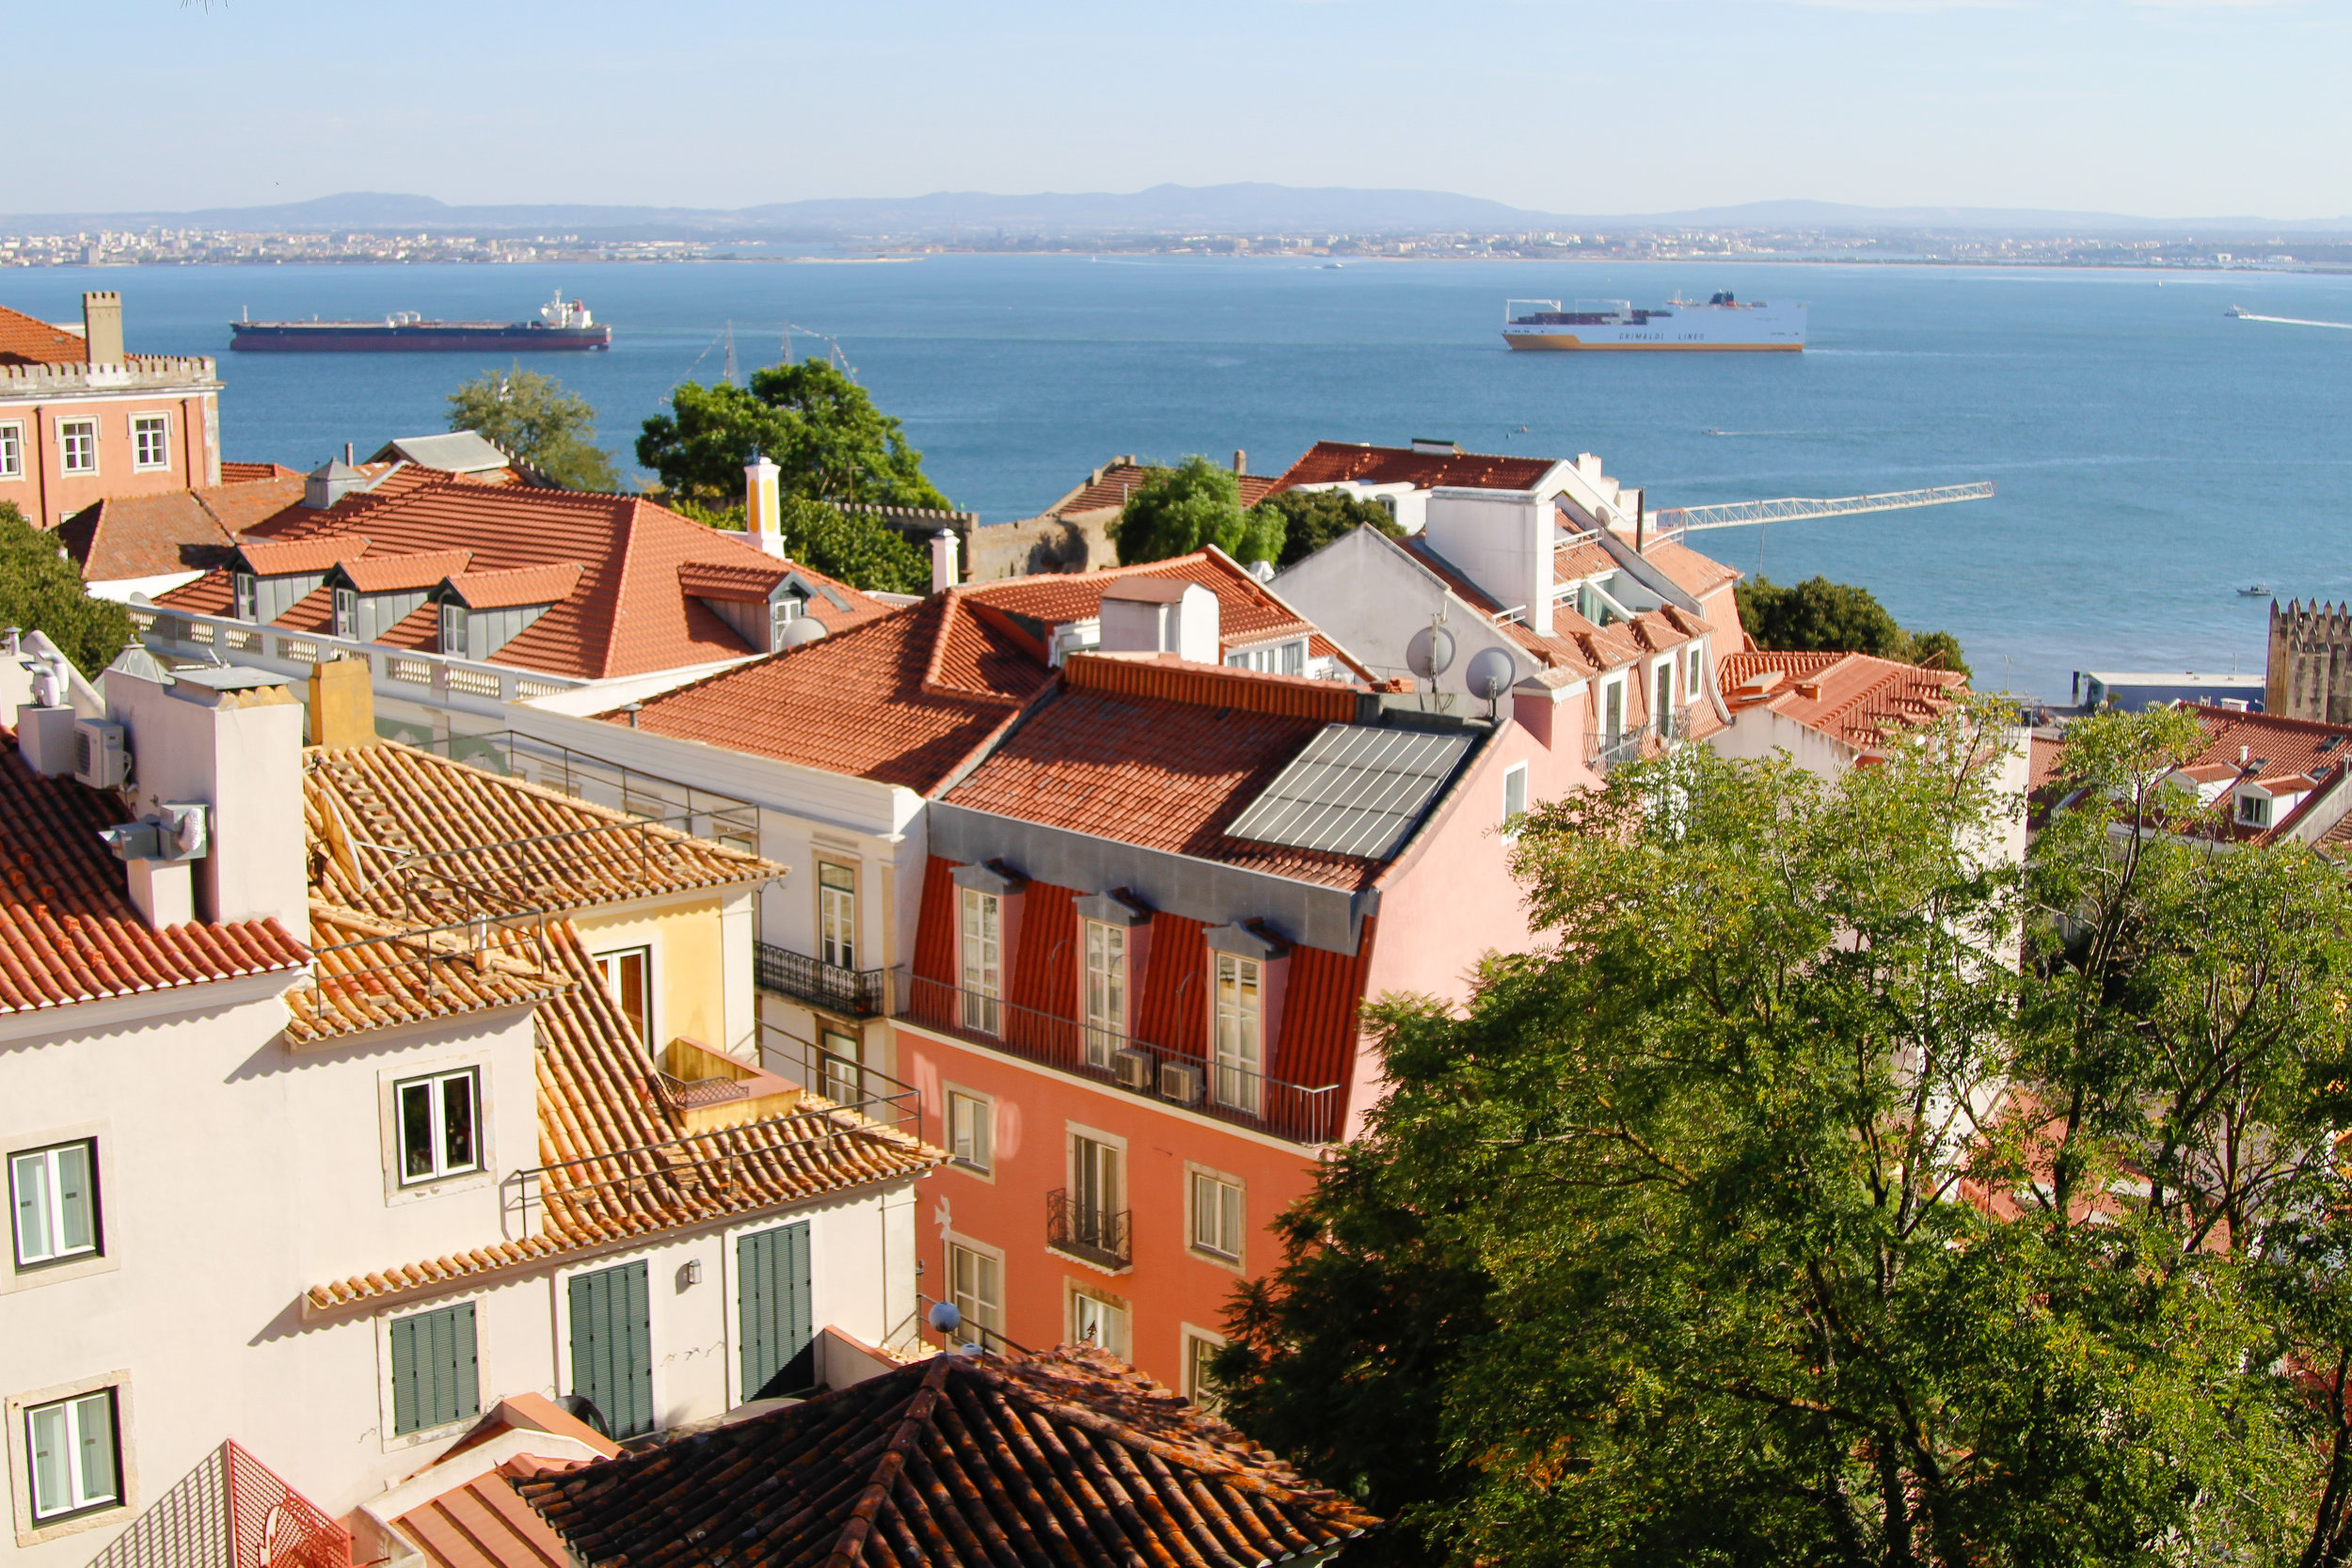 View of Lisbon from São Jorge Castle